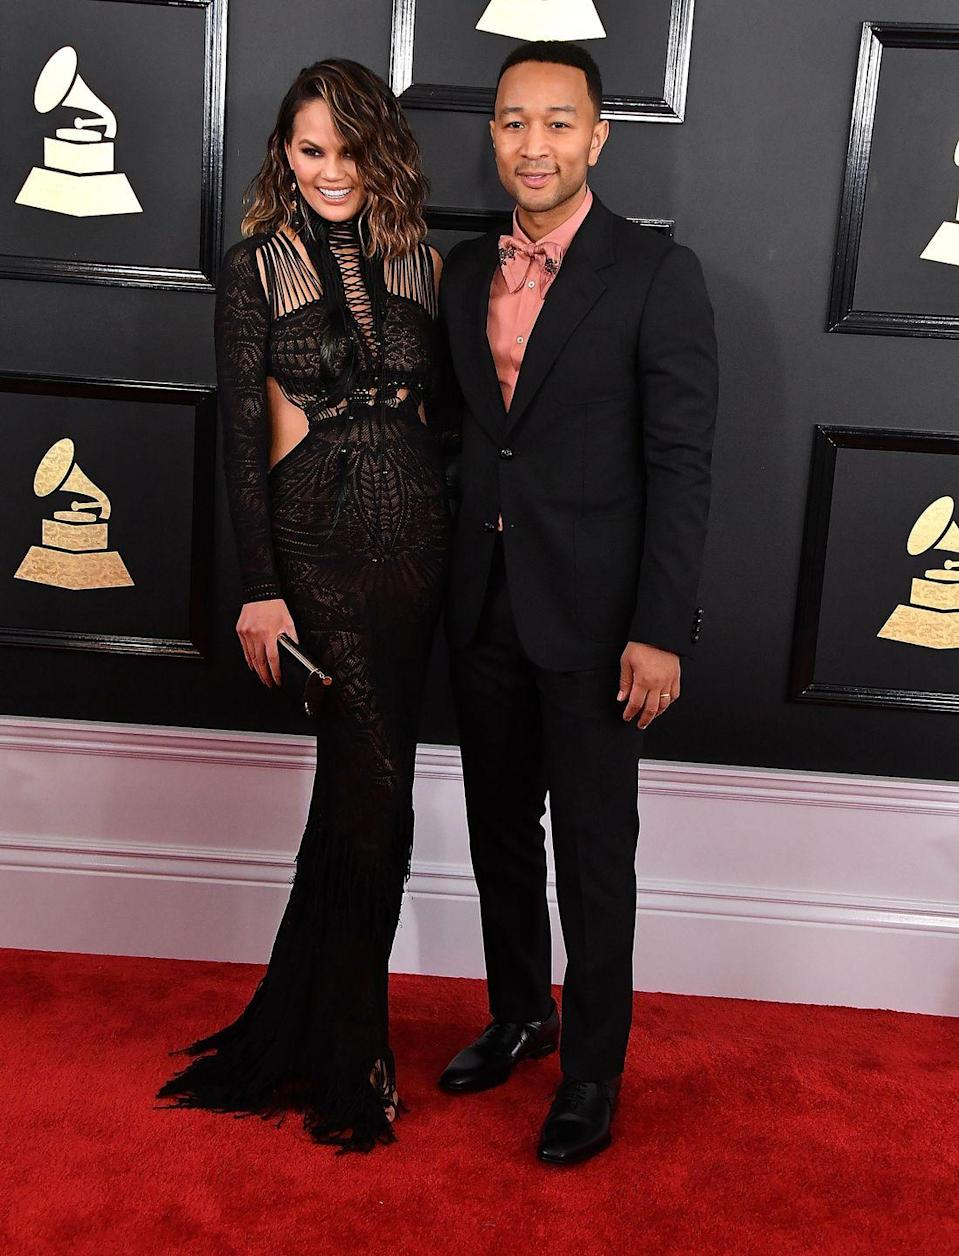 <p>Posing on the red carpet for the 2017 Grammy awards.</p>